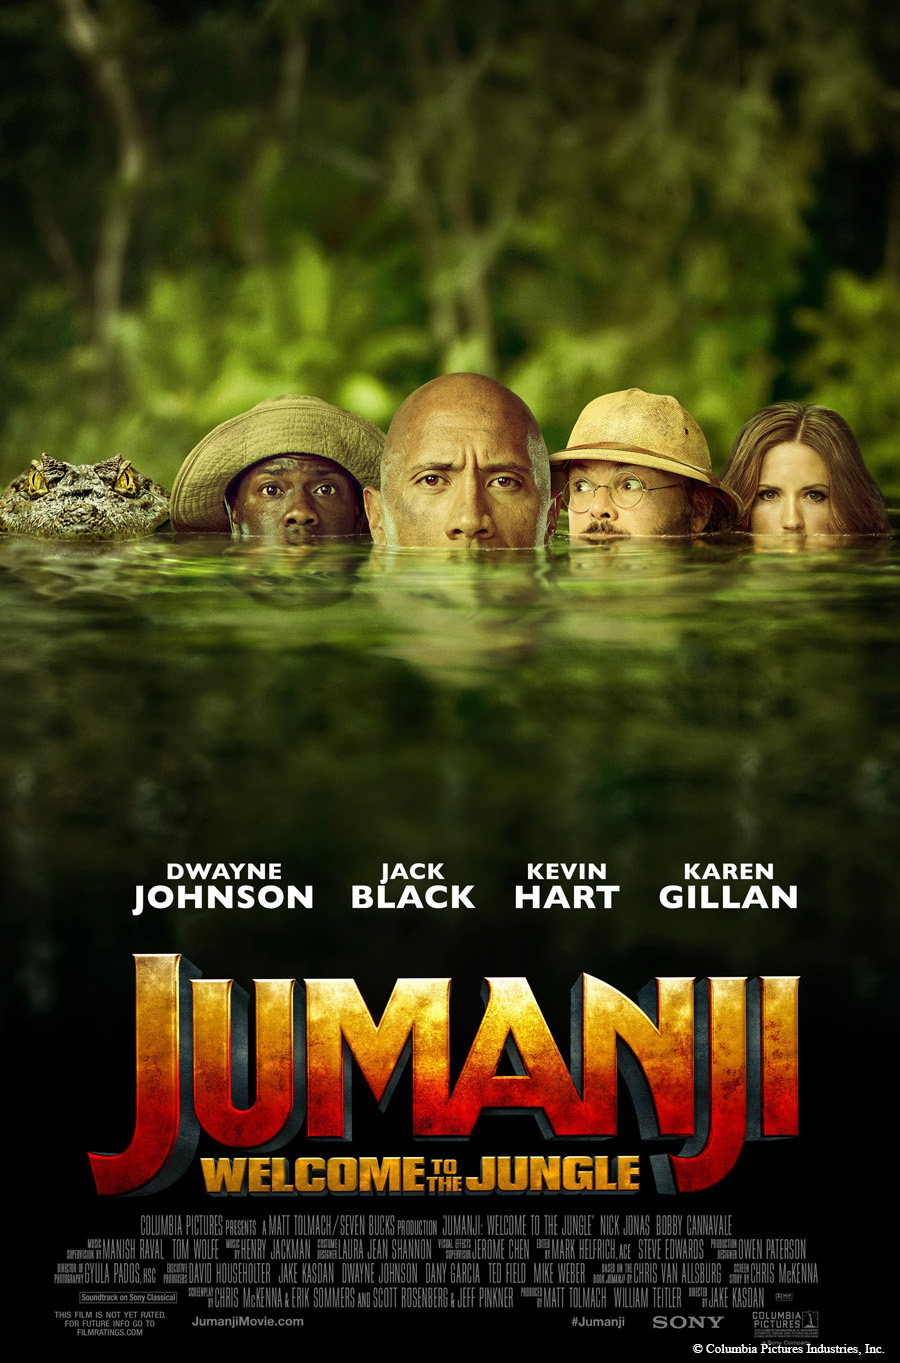 Jumanji - Movies in the Park